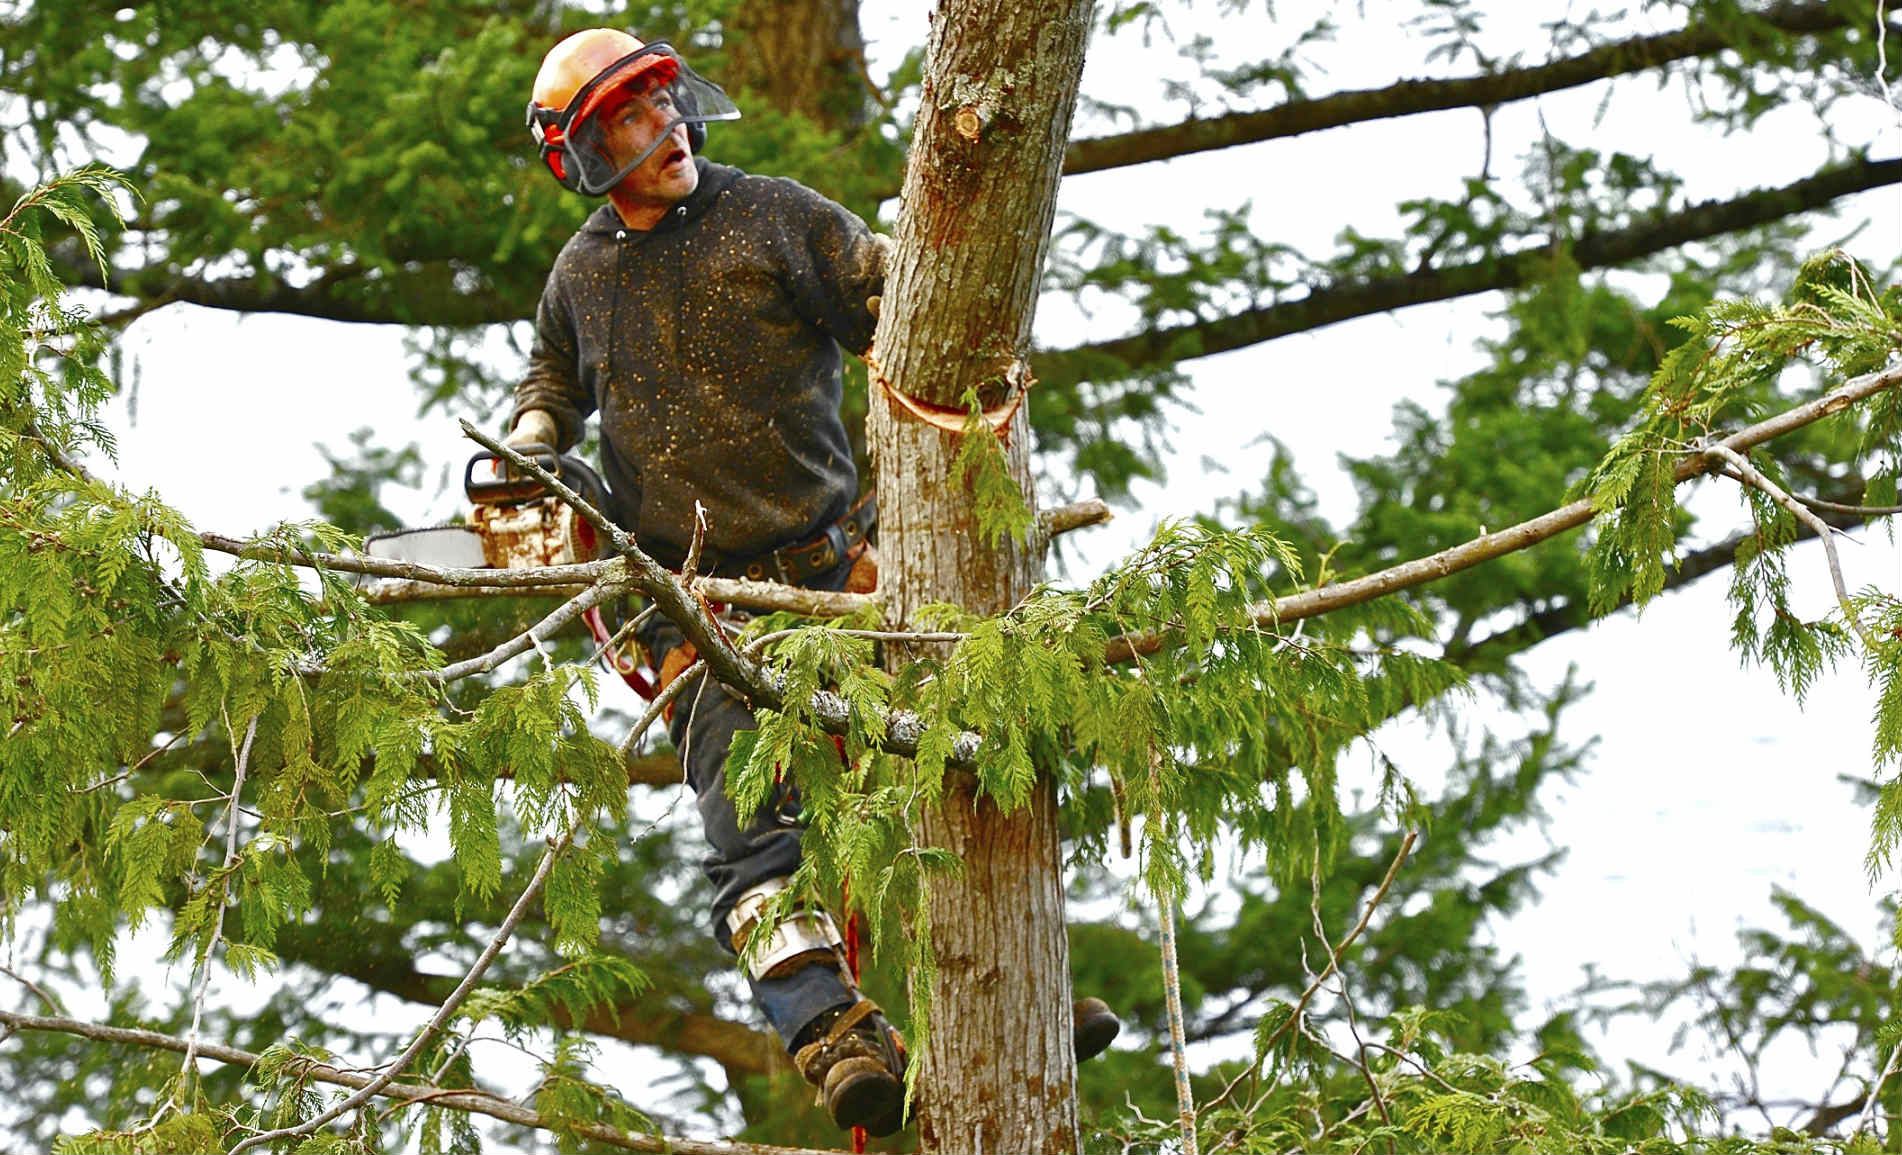 Miramar FL Tree Trimming and Stump Grinding Services Home Page Image-We Offer Tree Trimming Services, Tree Removal, Tree Pruning, Tree Cutting, Residential and Commercial Tree Trimming Services, Storm Damage, Emergency Tree Removal, Land Clearing, Tree Companies, Tree Care Service, Stump Grinding, and we're the Best Tree Trimming Company Near You Guaranteed!